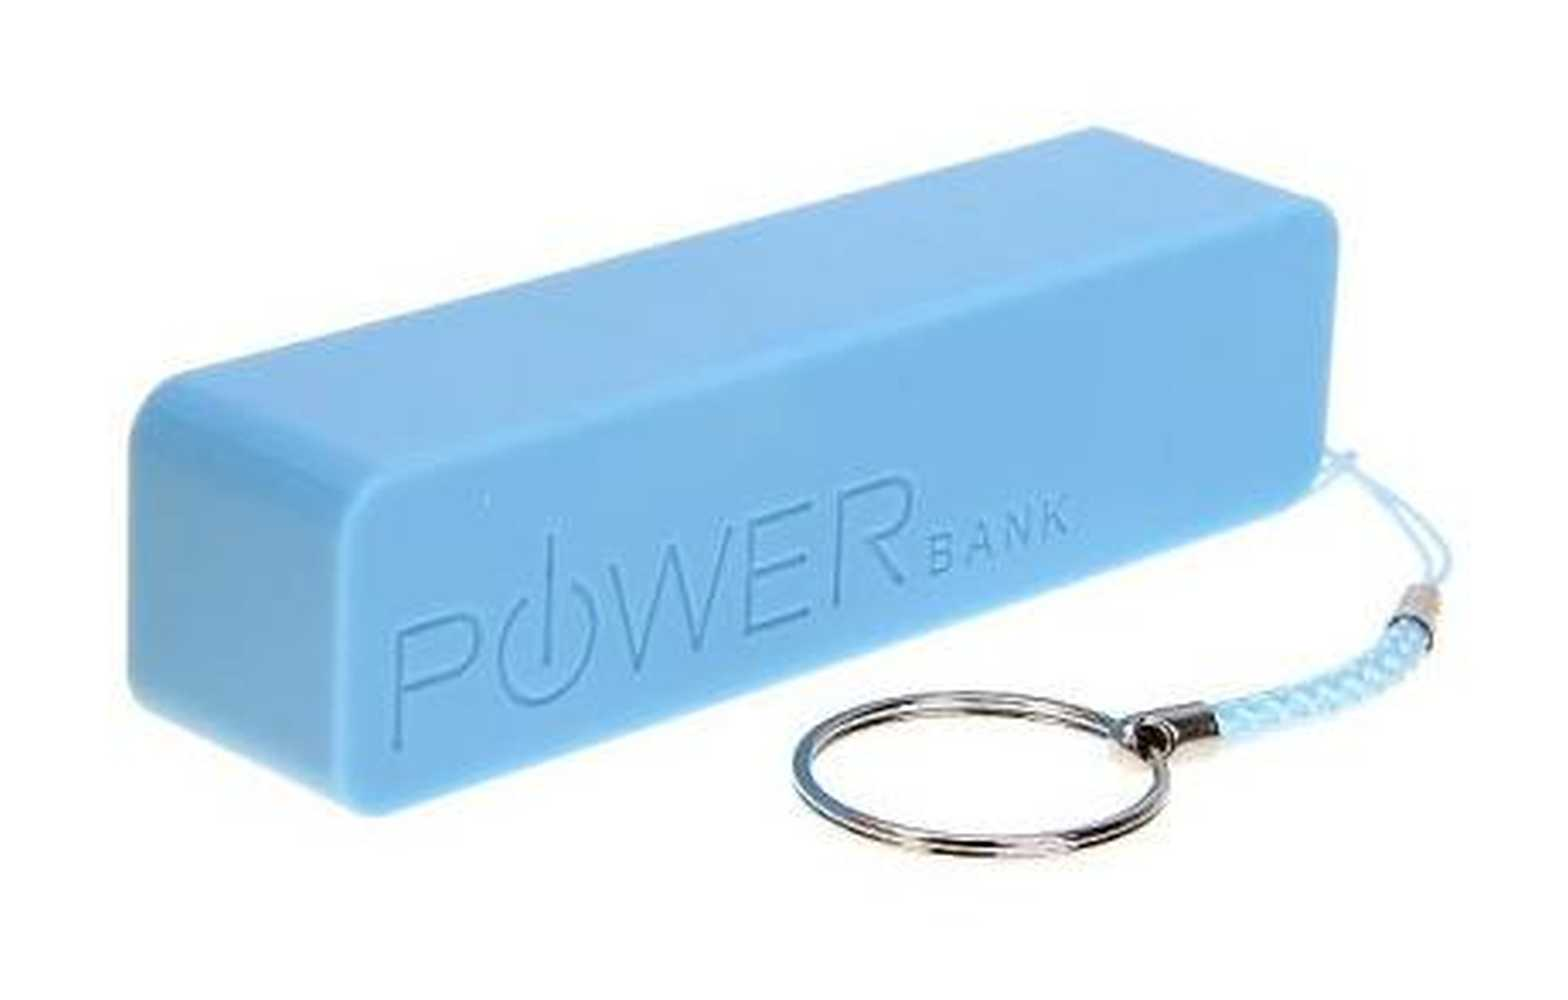 Power Bank For Samsung Galaxy S4 i9500 2600mAh